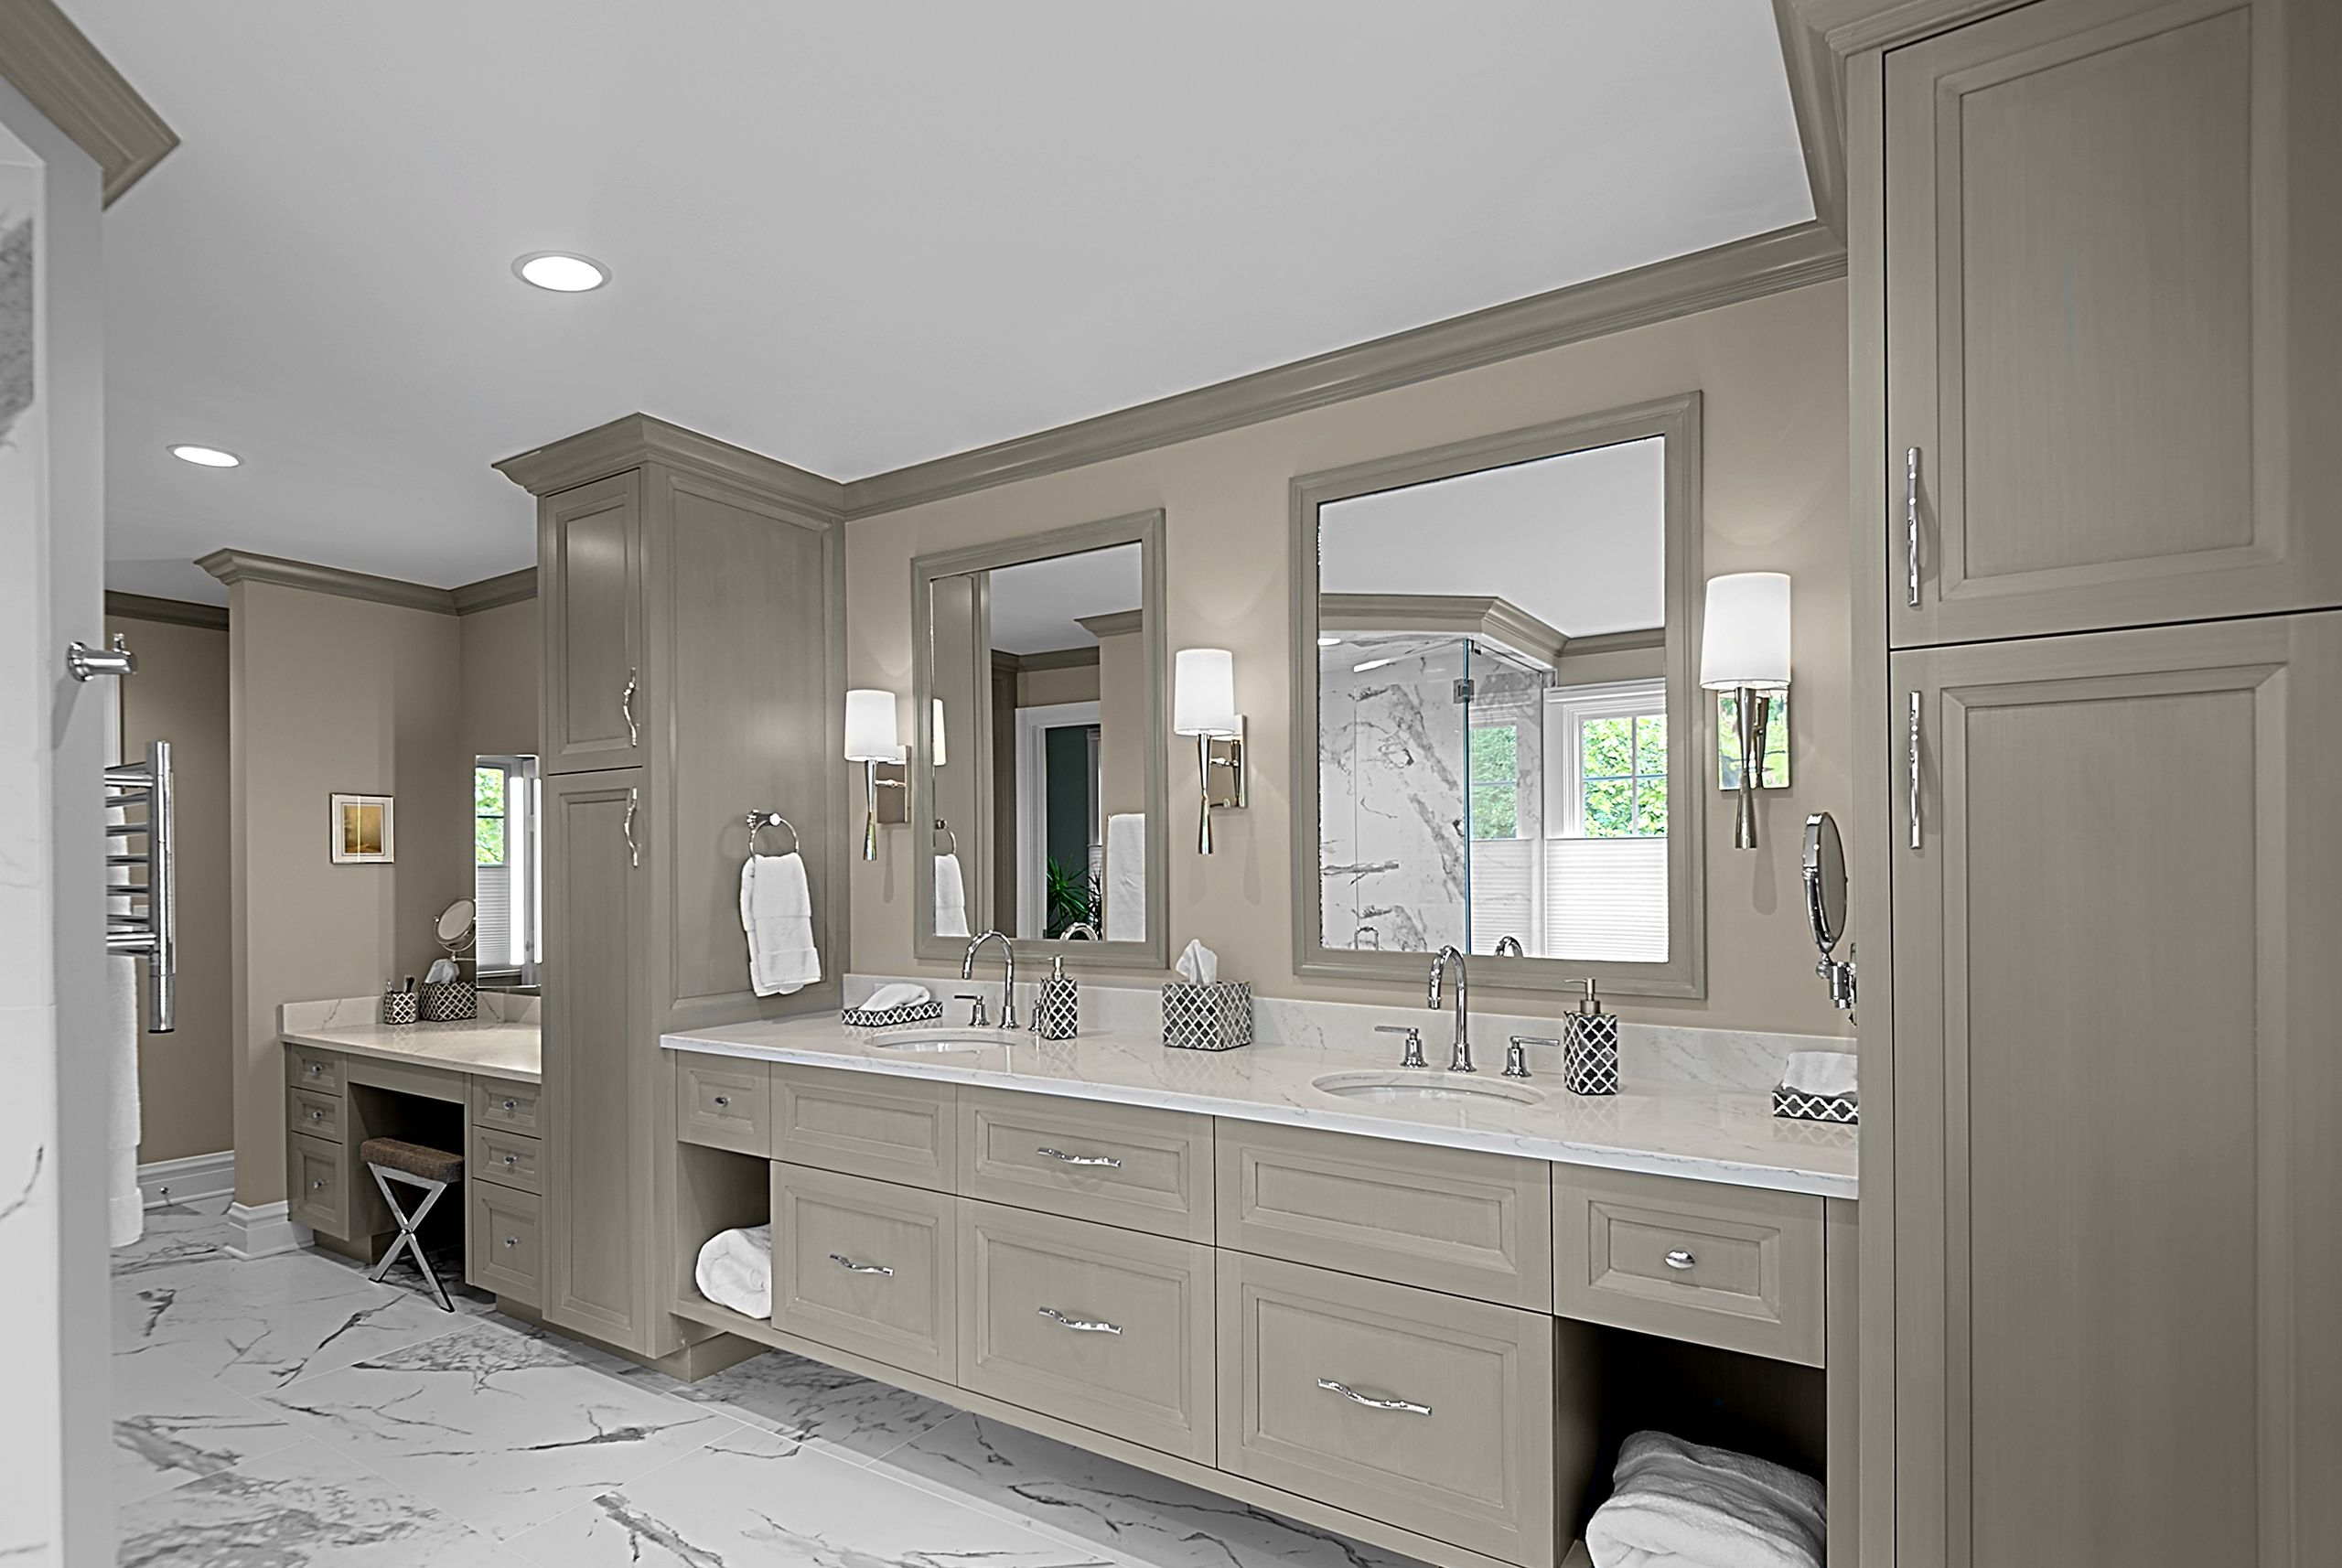 Large Custom Vanity Large Bathroom Remodel Custom Bathroom Vanity Custom Bathroom